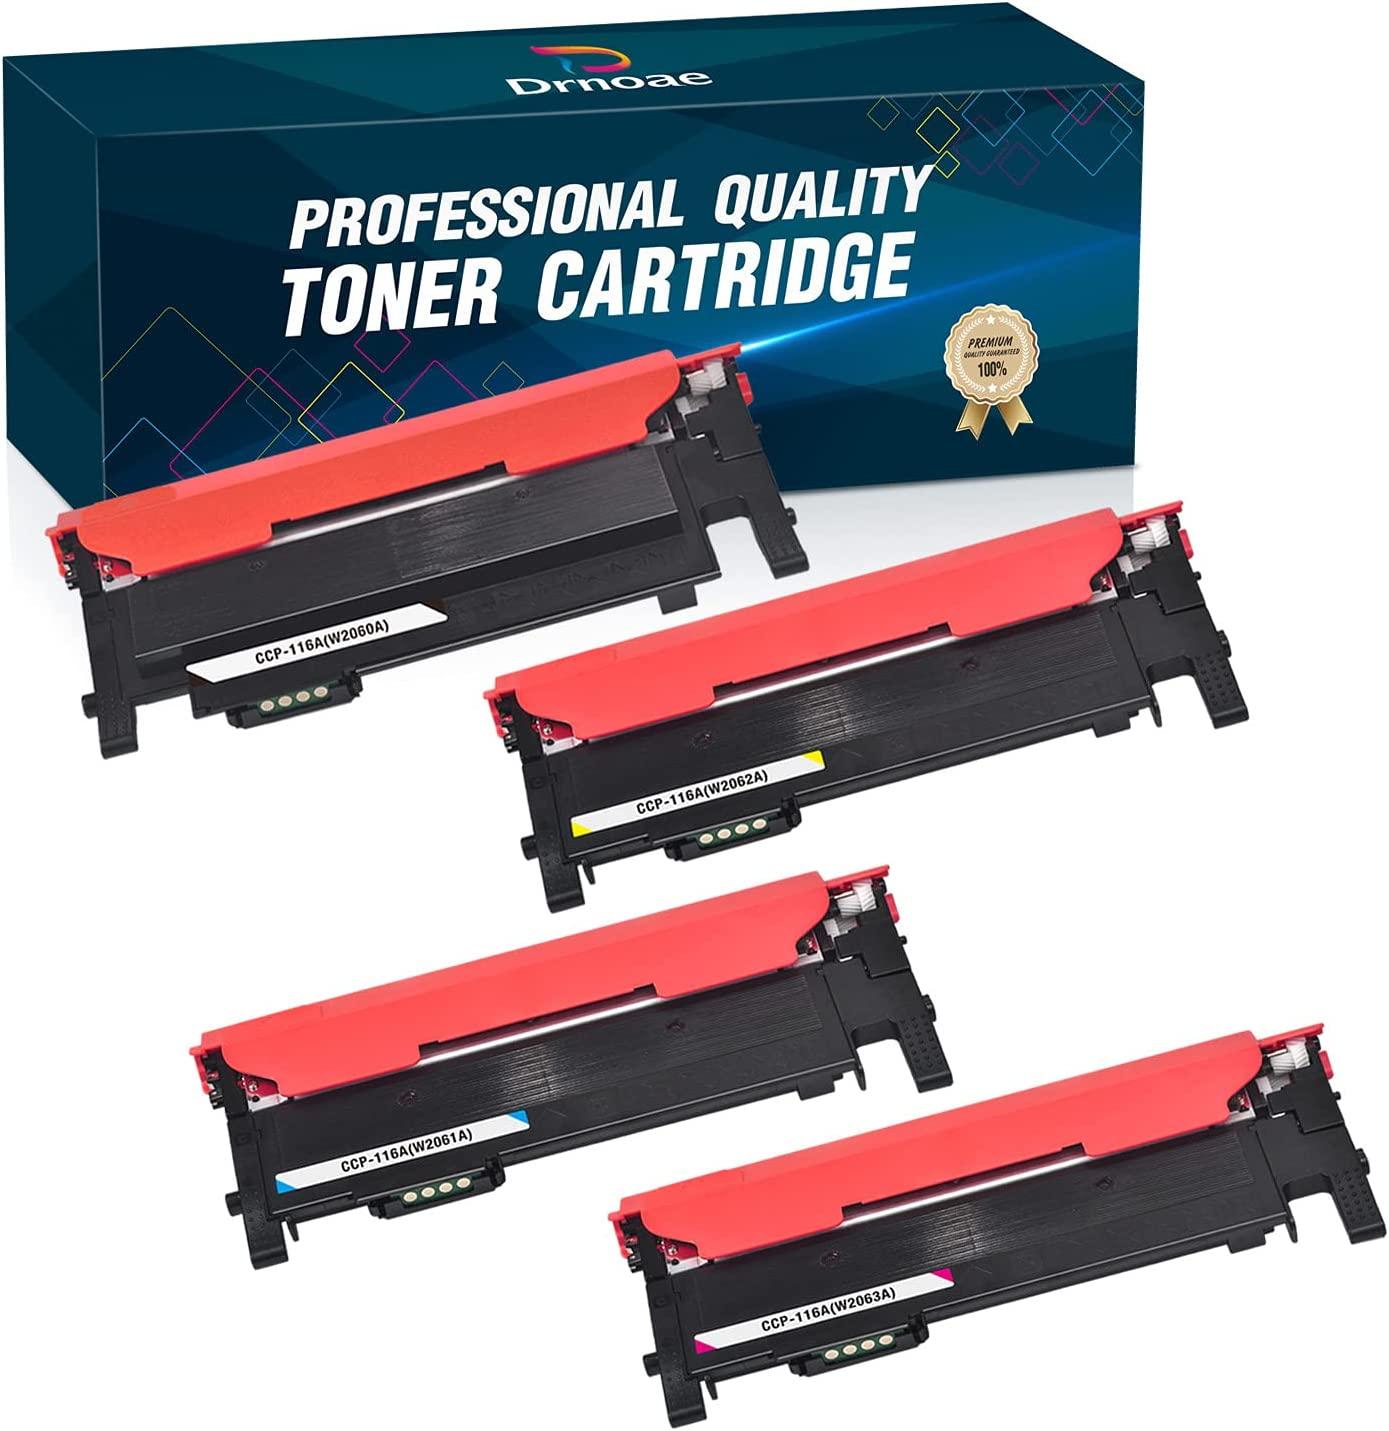 Drnoae Compatible Toner Cartridge Replacement for HP 116A W2060A W2061A W2062A W2063A Work with HP Color Laser 150A MFP178nw 179fnw Printers, 4 Pack (1 Black, 1 Cyan, 1 Yellow, 1 Magenta)